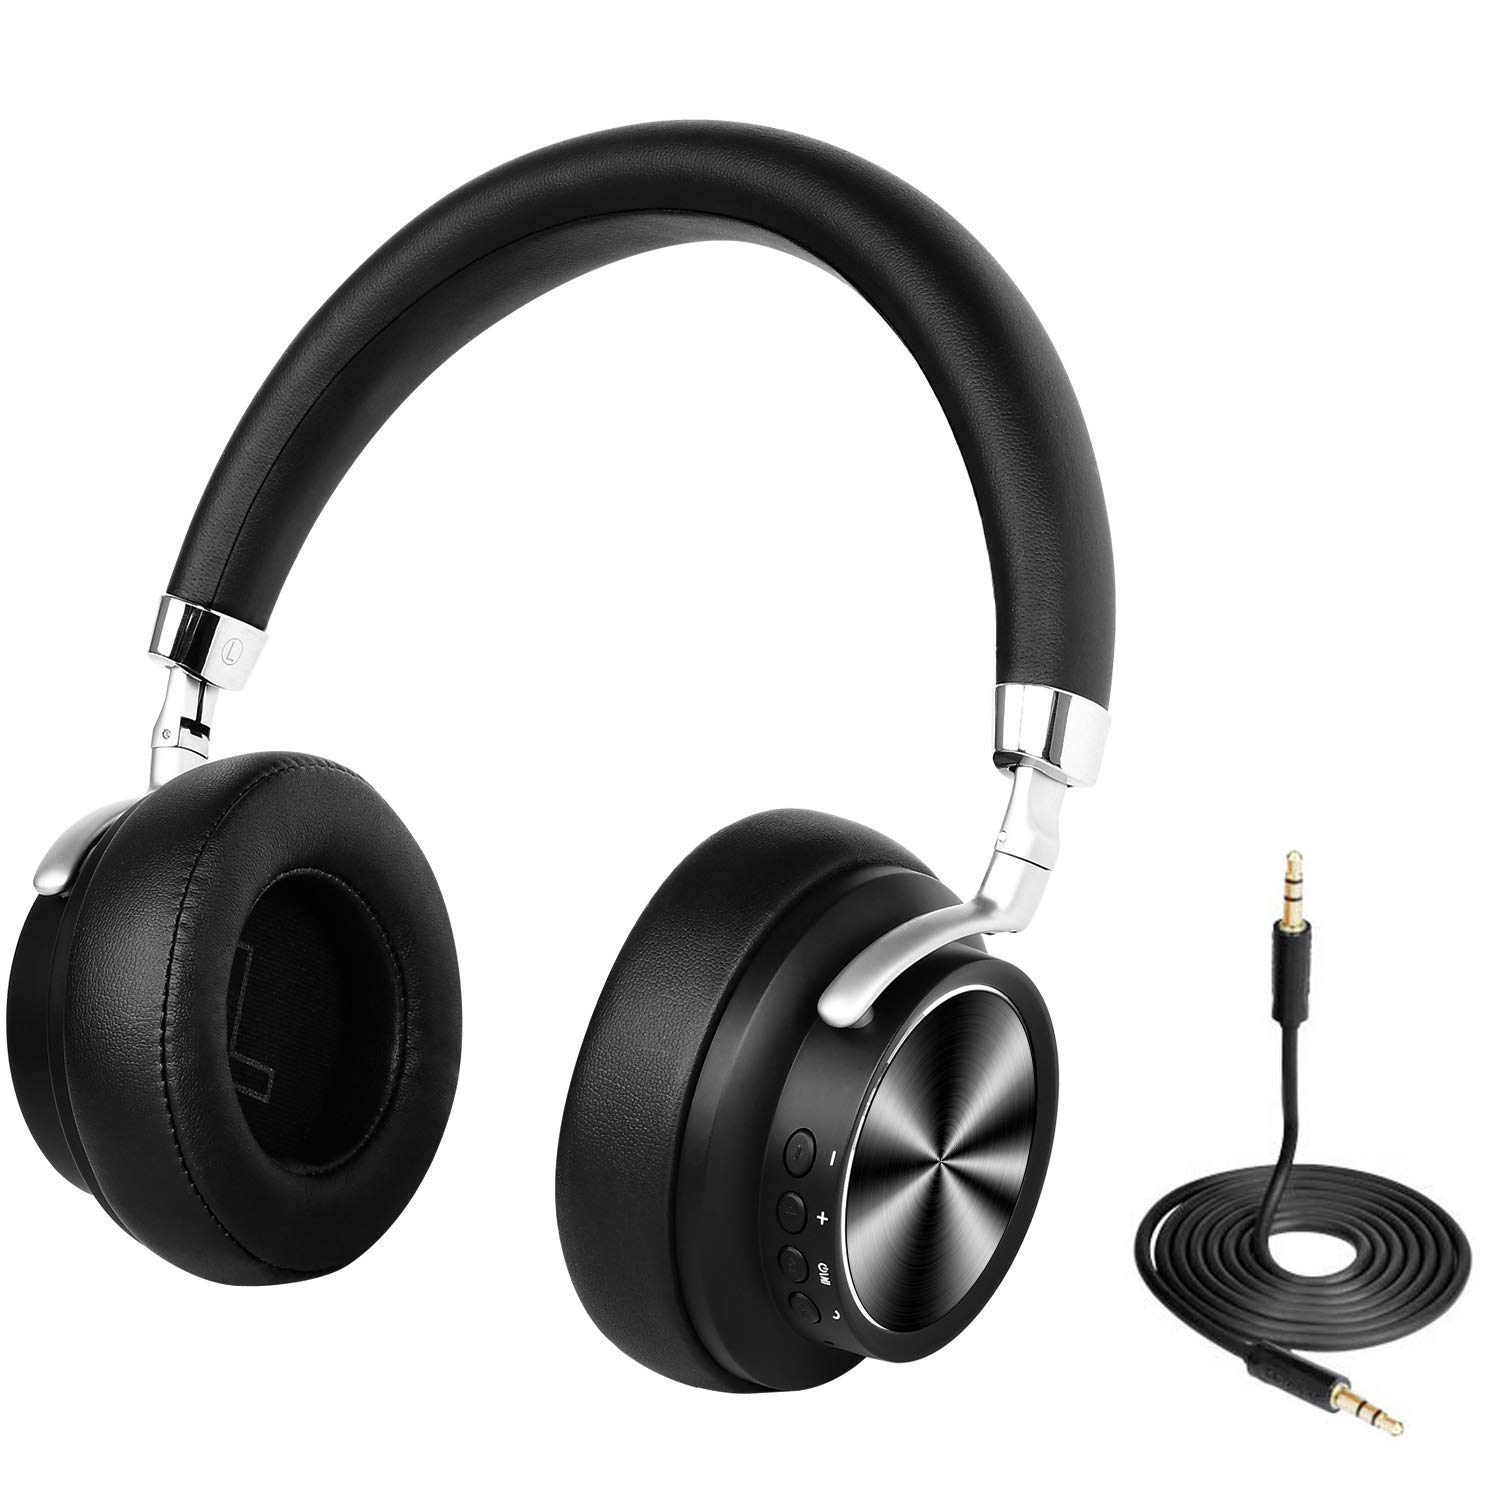 Wireless Bluetooth Headphones, Over-Ear Headset with Microphone, Low Latency Stereo Headset for Travel Work for Smart Phone/Laptop